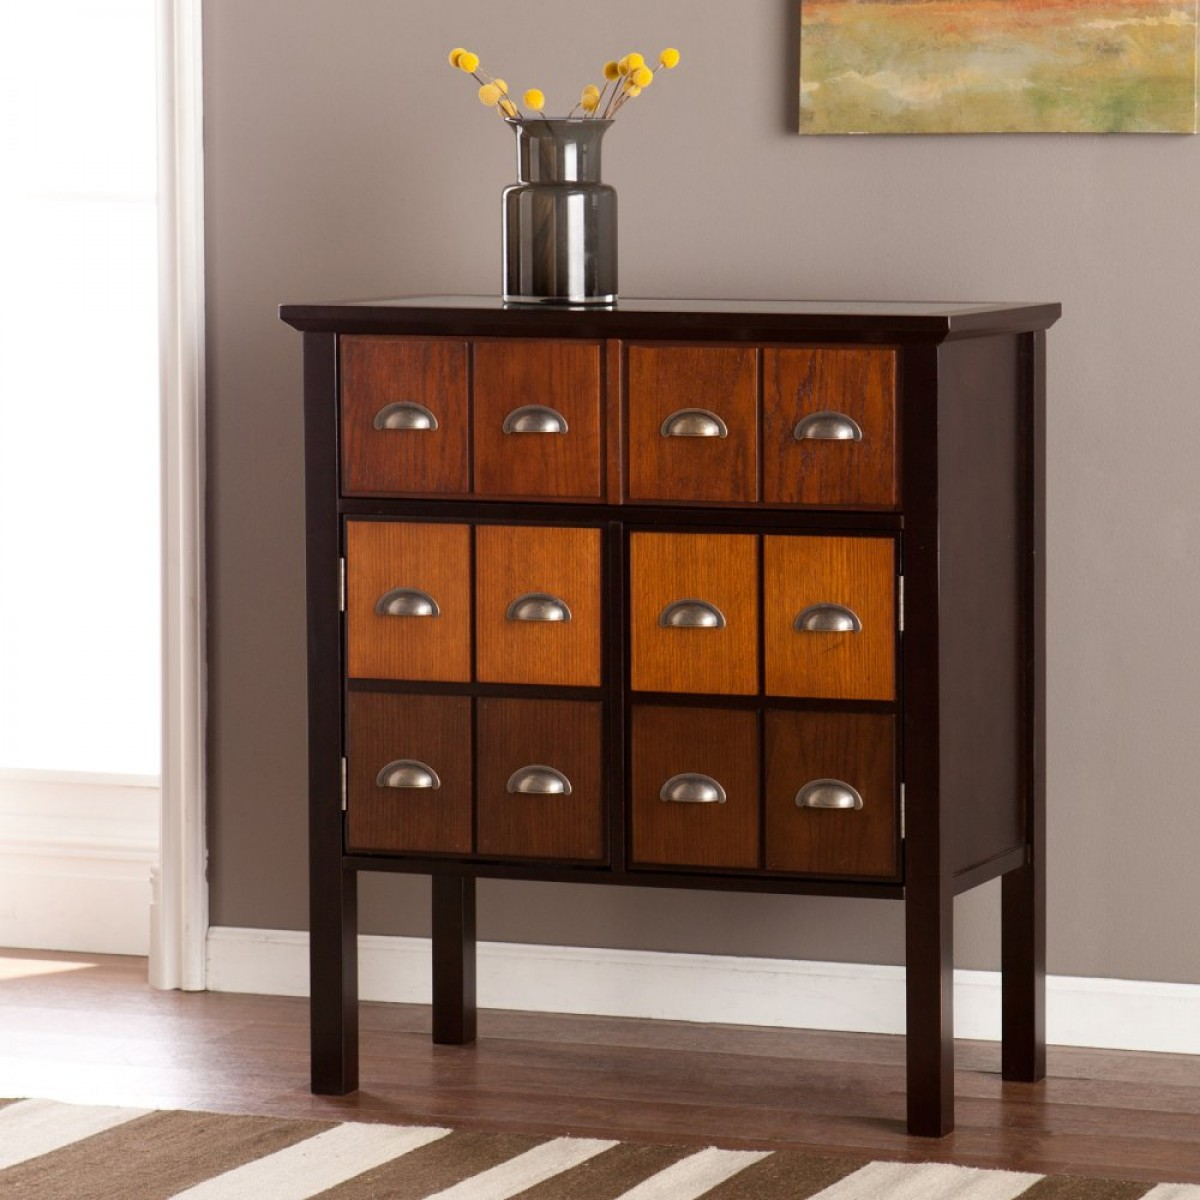 online retailer 5670d 4cadb Multiple-Decorative chest